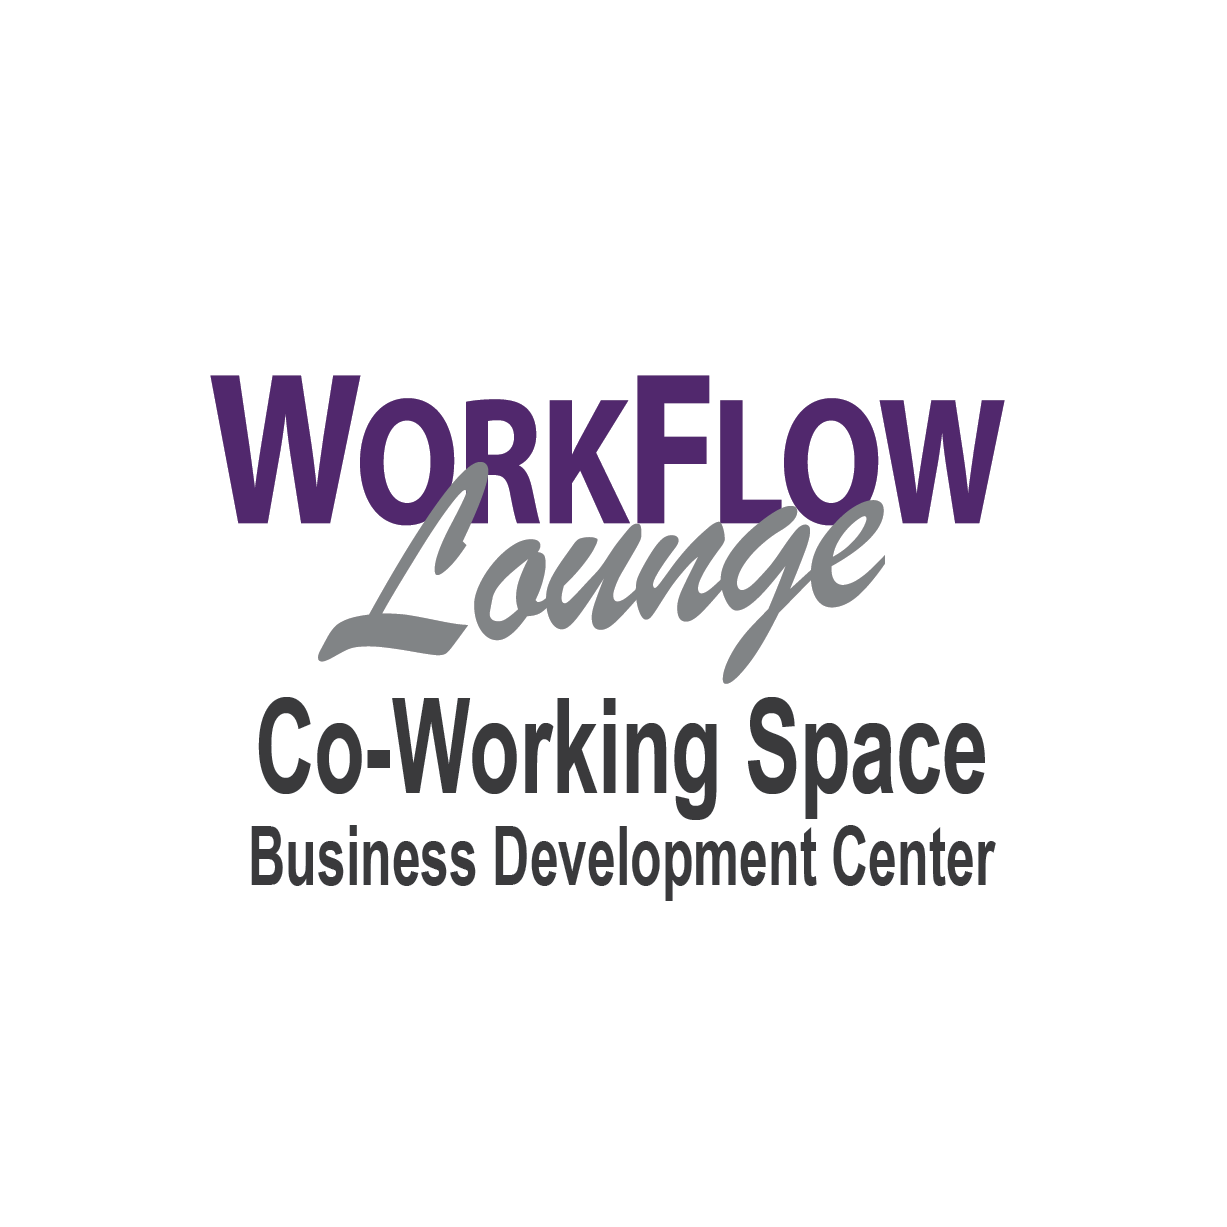 WorkFlow Lounge Inc